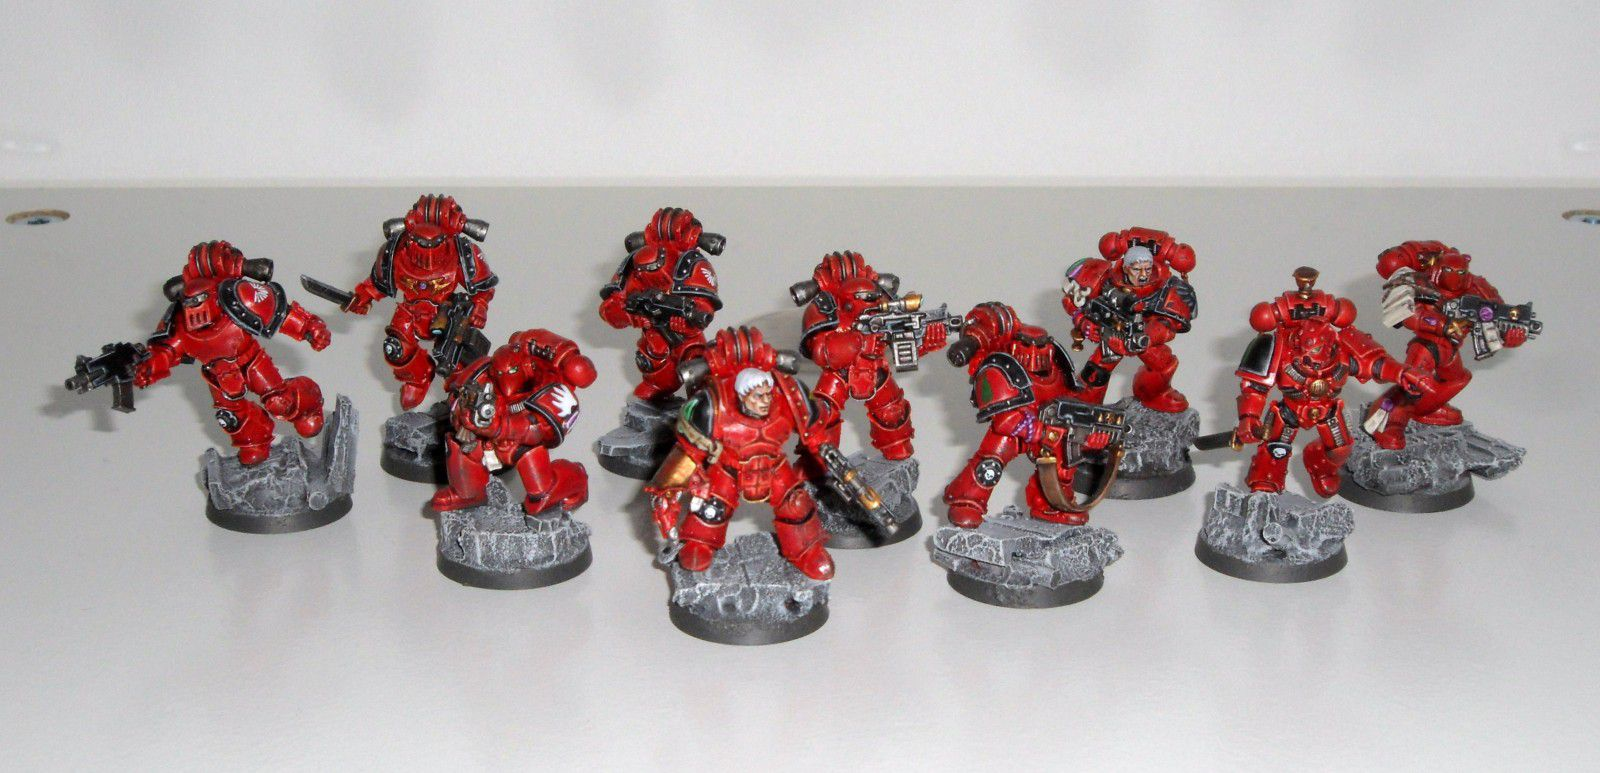 [IX] Par le sang de Sanguinius. Armée Blood Angels 30K. SAM_3129